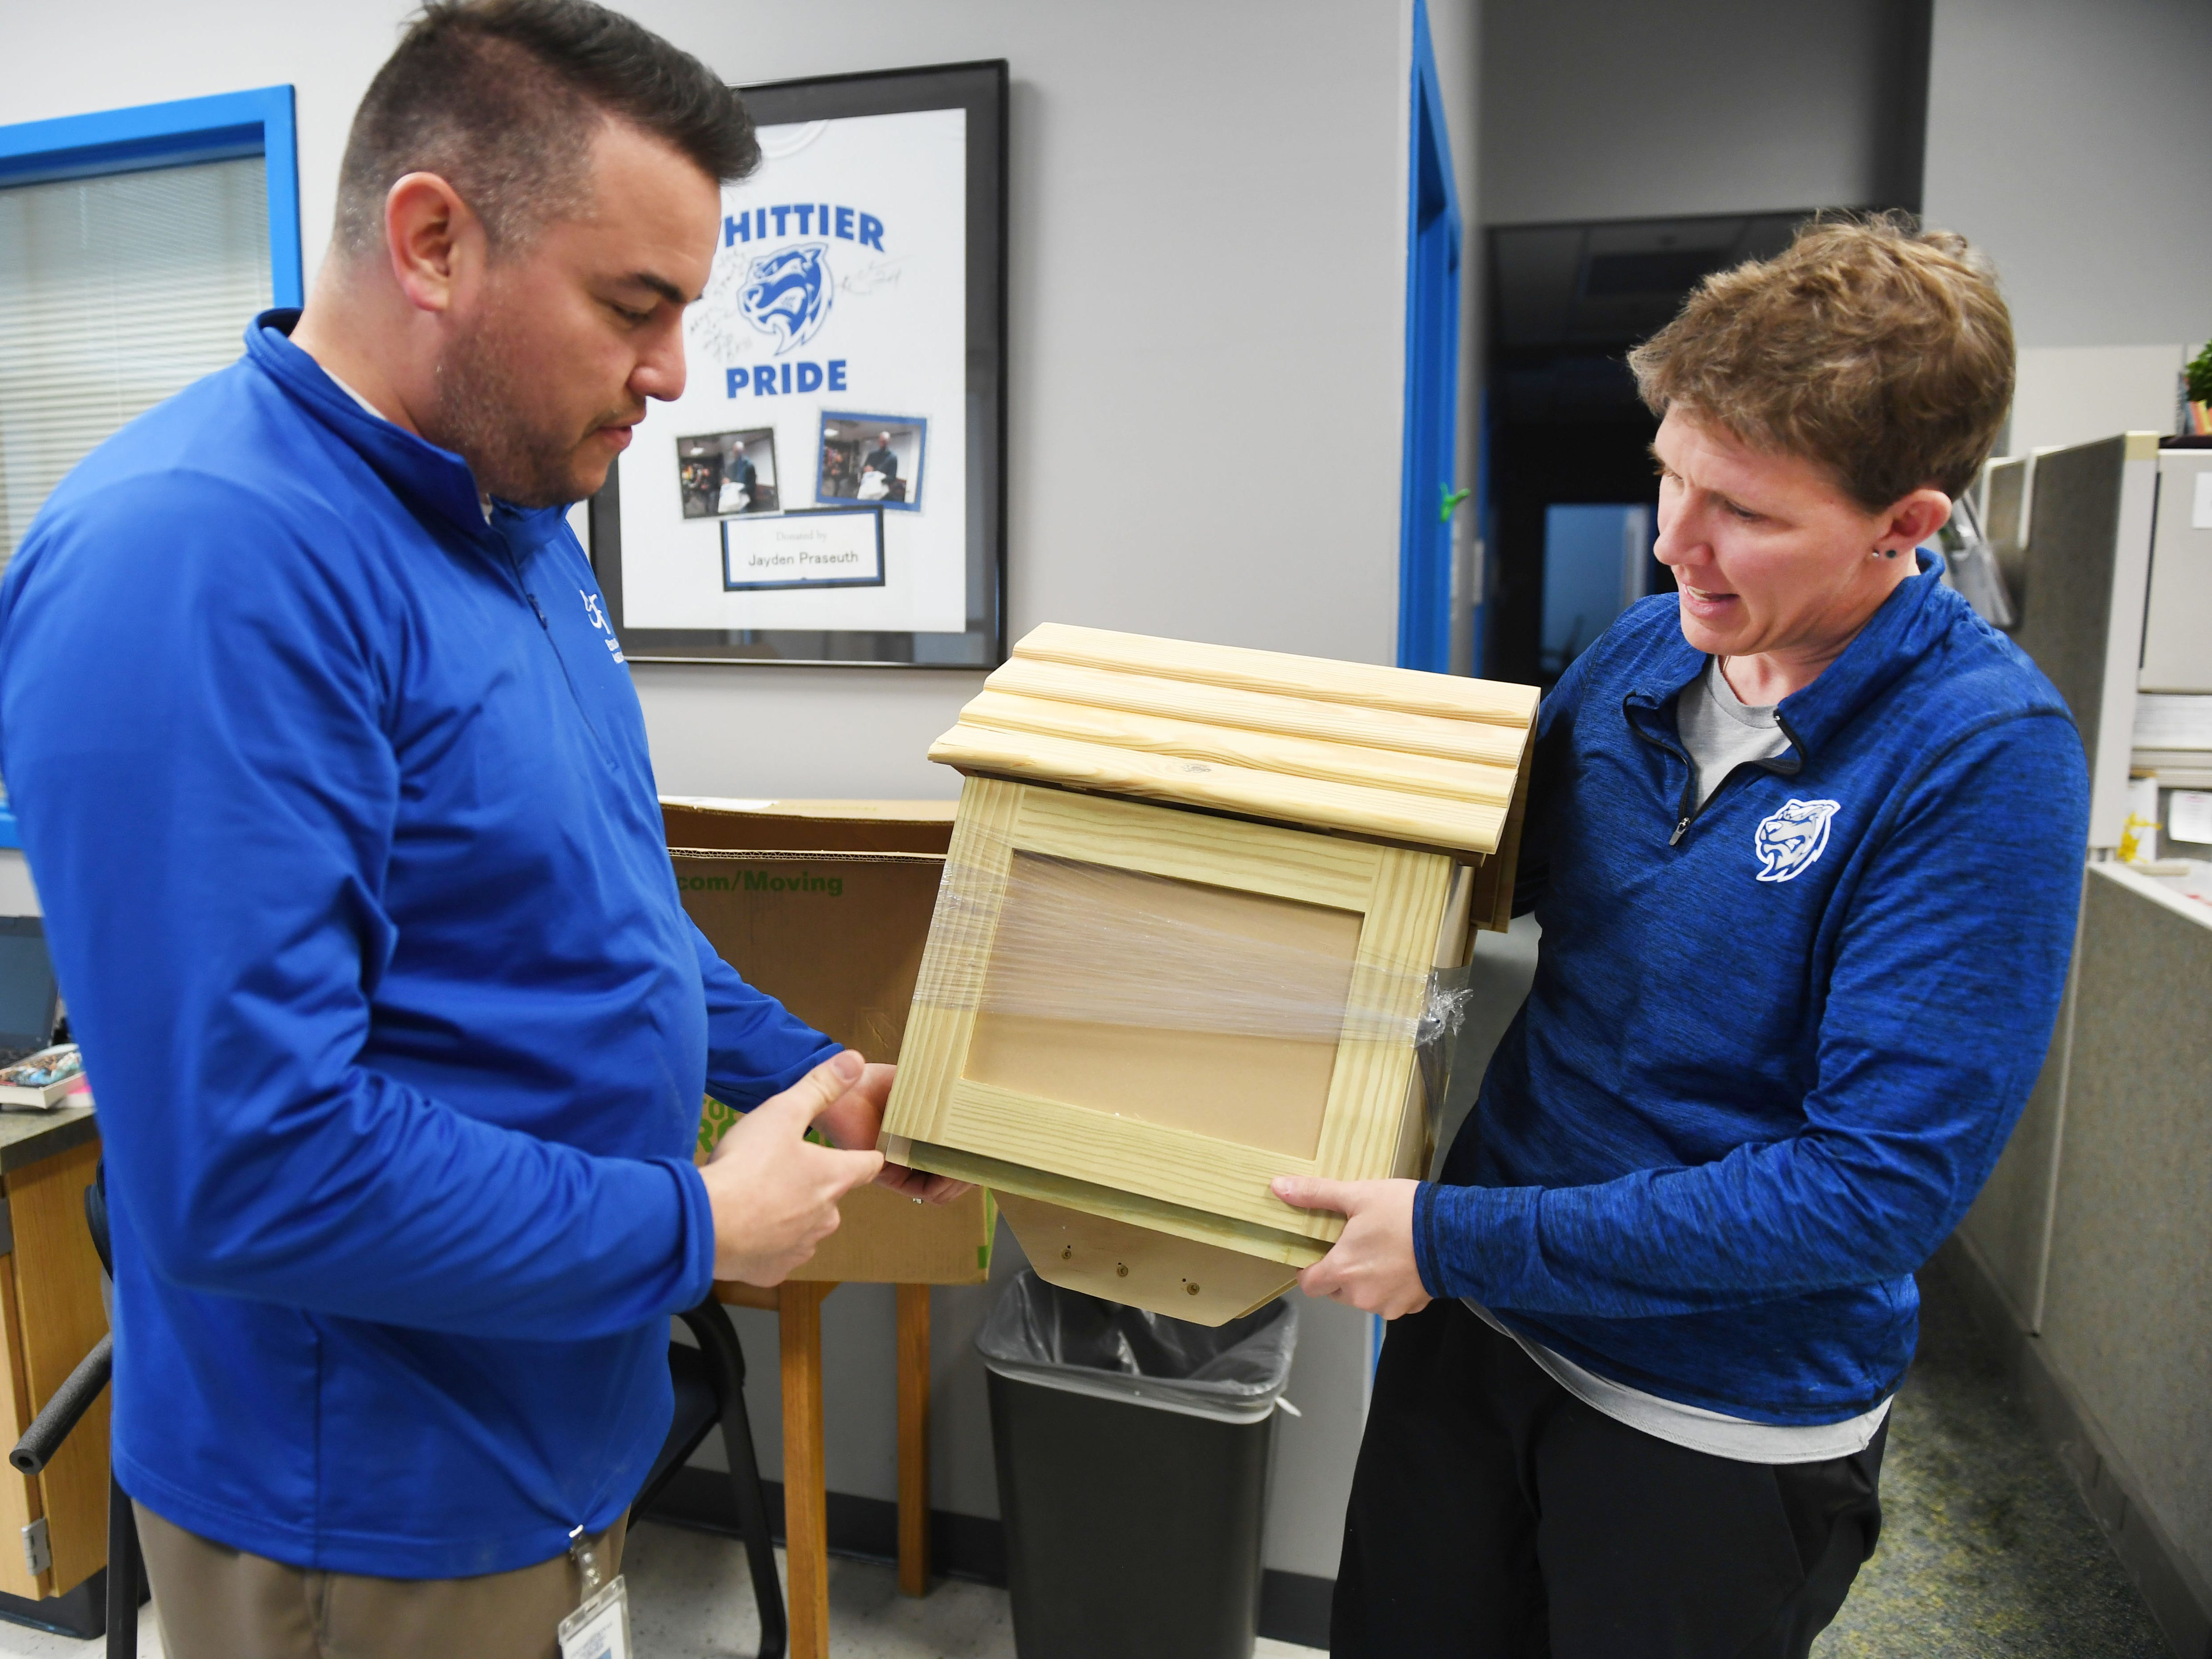 Tony Martinet, Sioux Falls Education Association President, delivers s Little Free Library to Whittier Middle School's principal Jayne Zielenski Friday, March 1, in Sioux Falls. Martinet went to six elementary schools to drop of the Little Free Libraries. He said they have a total of 10 Little Free Libraries they want to give to schools. Four of the libraries are still available.